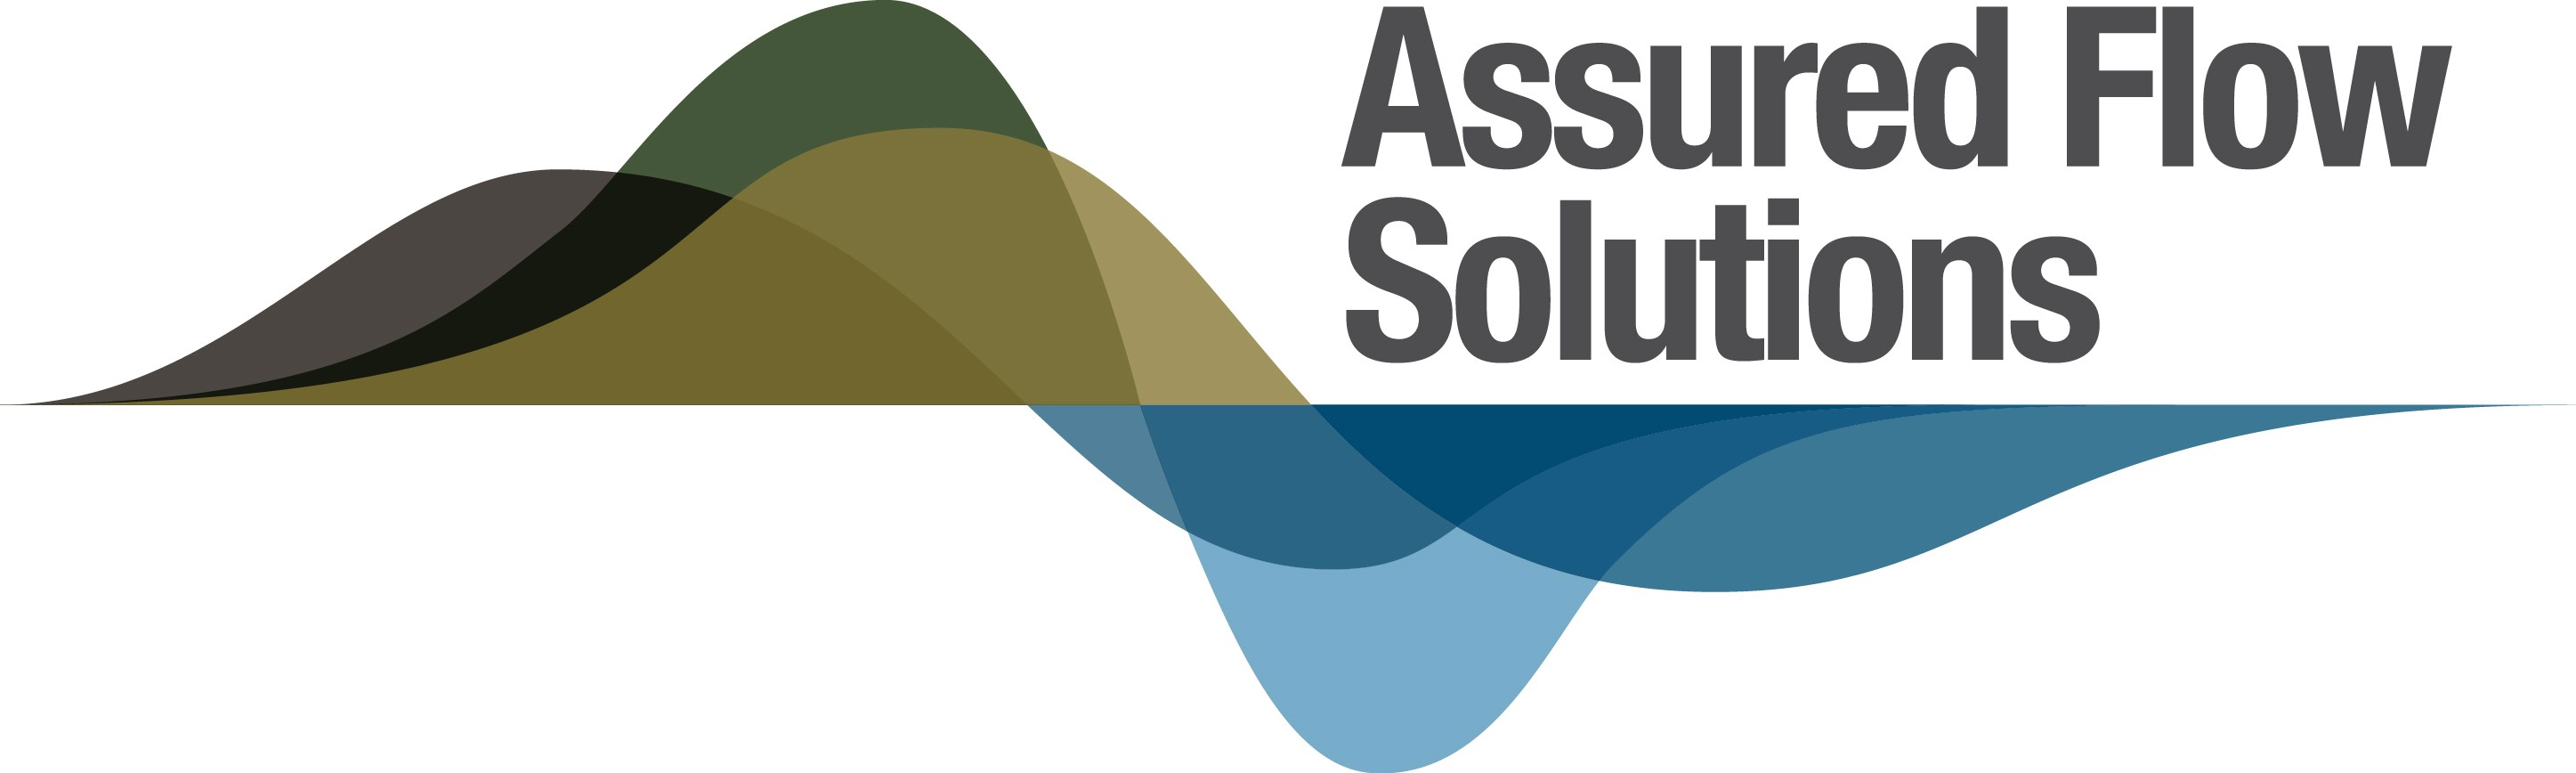 Assured Flow Solutions LLC